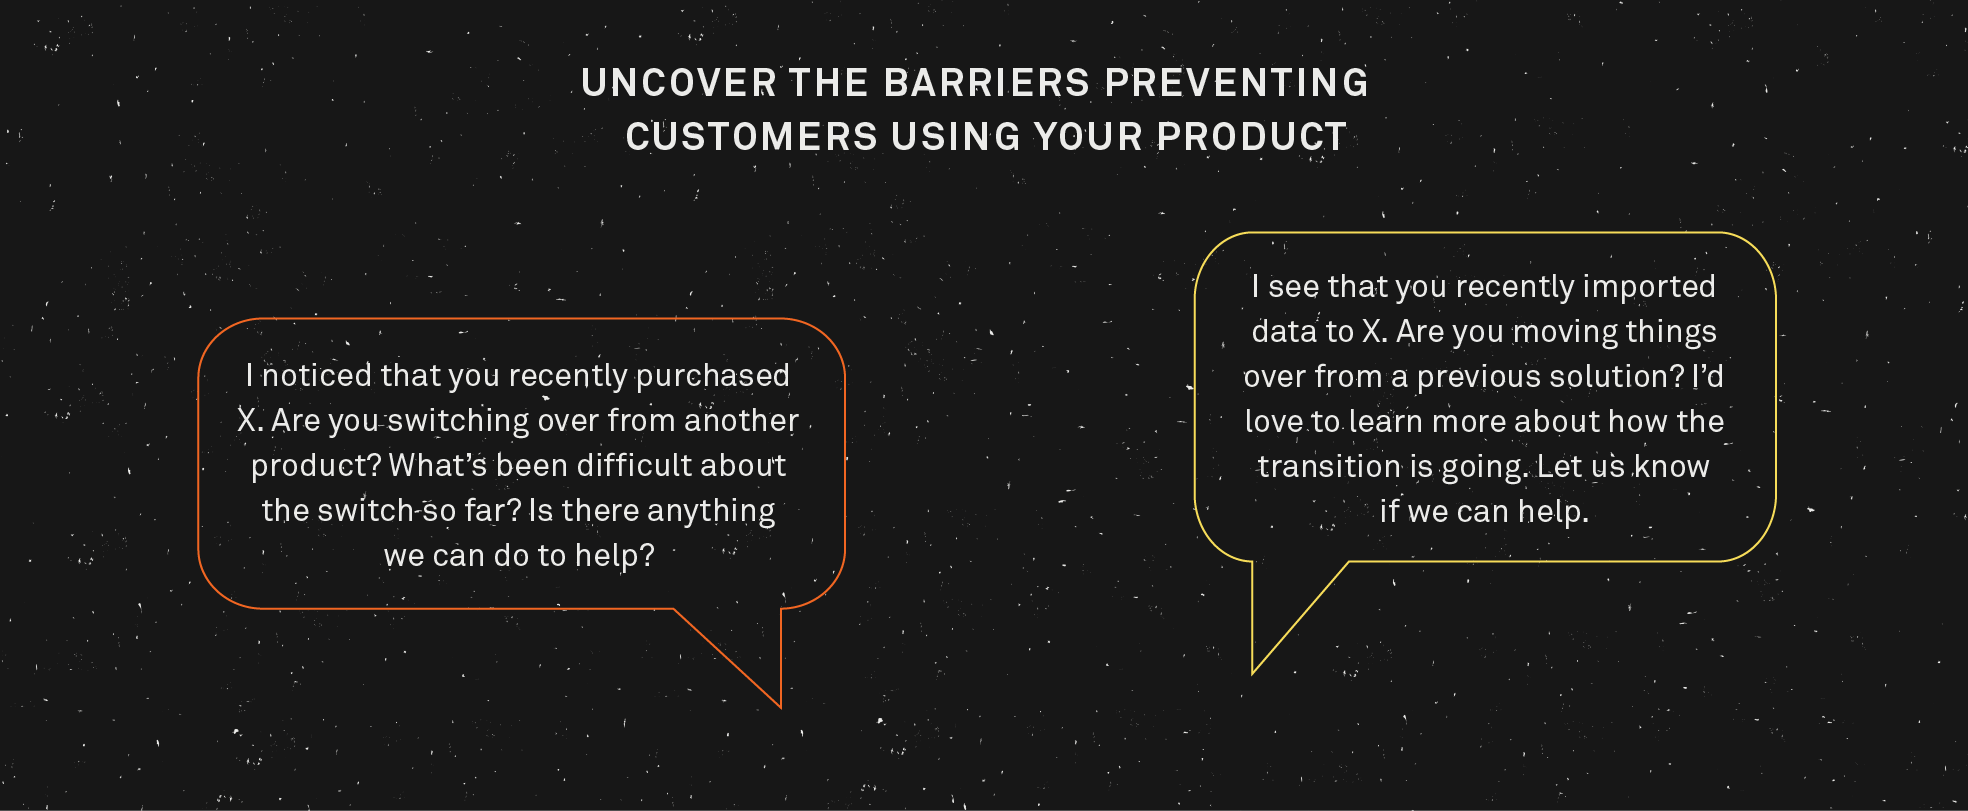 Uncover the barriers preventing customers from using your product